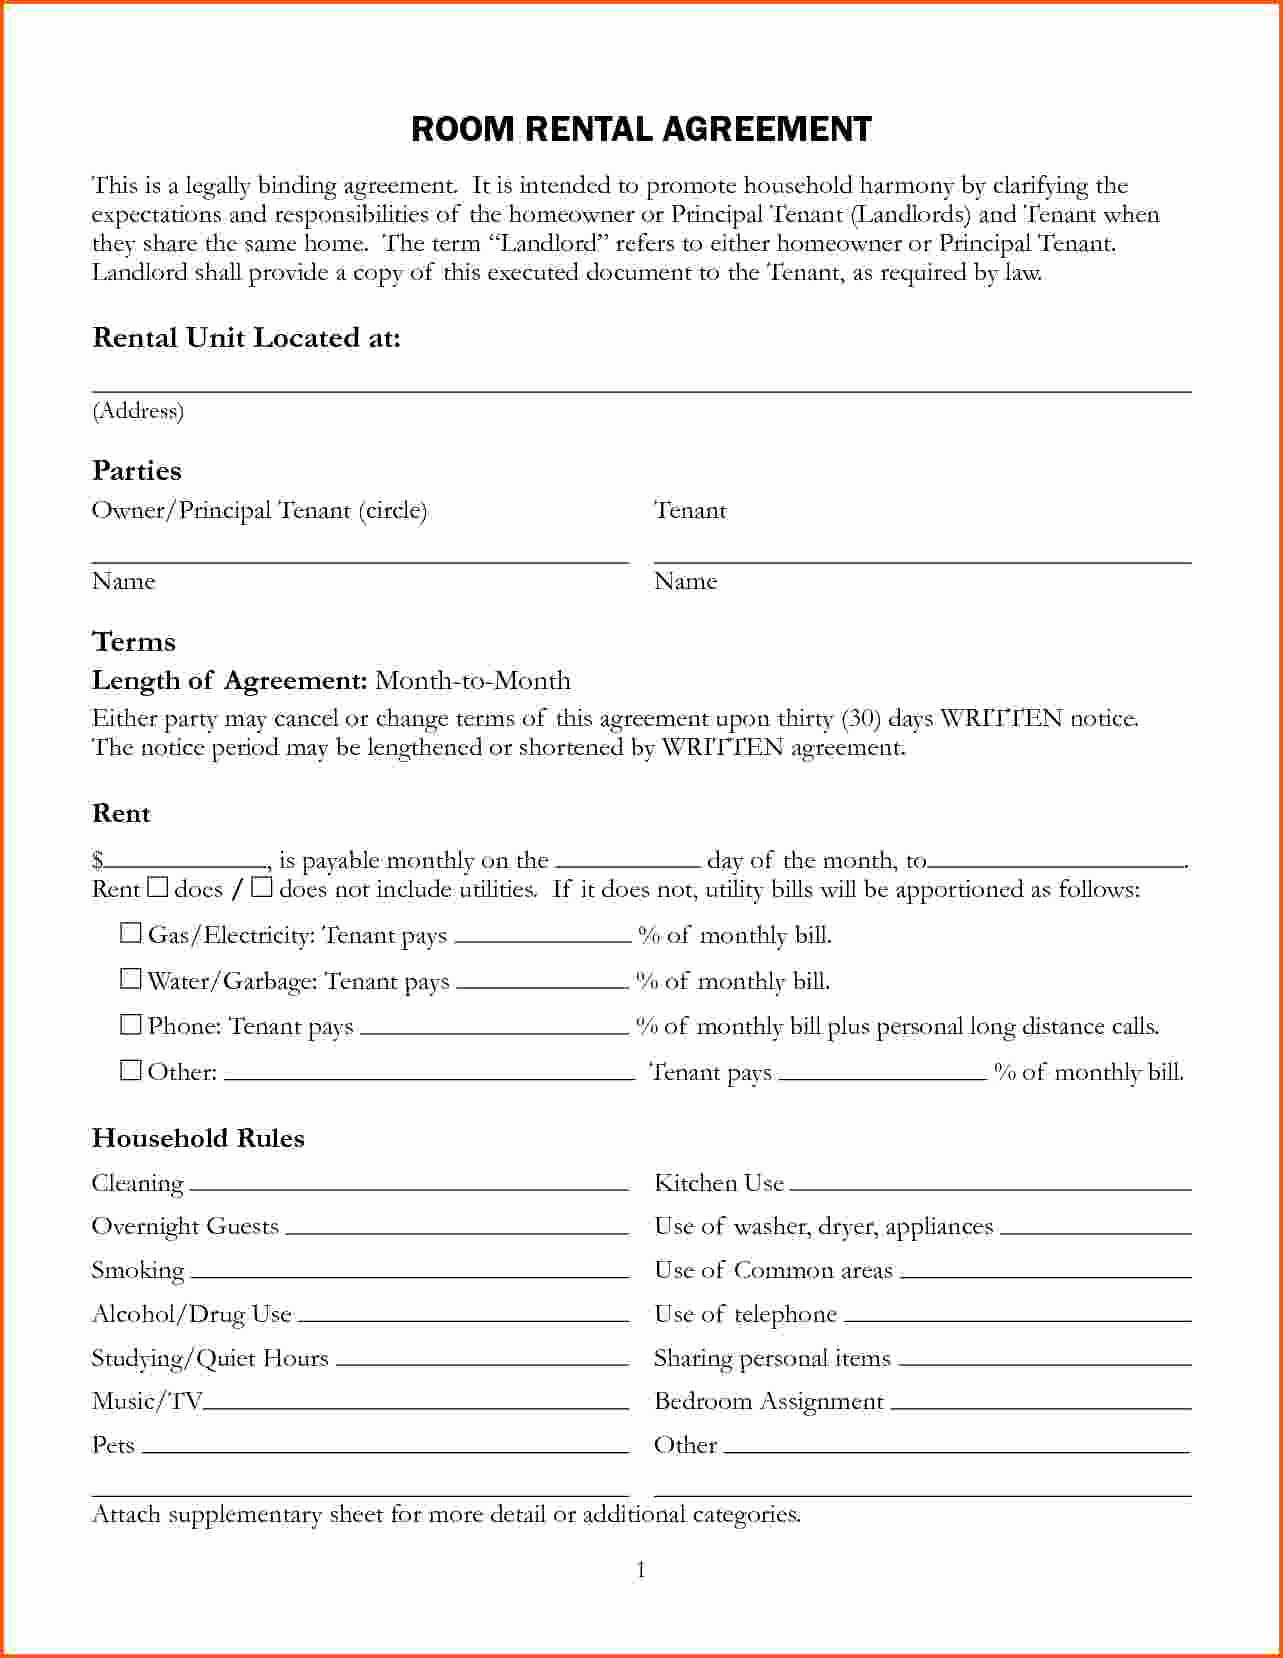 House Rental Contract Template Awesome Home Rental Agreement 28 Images House Rental Agreement